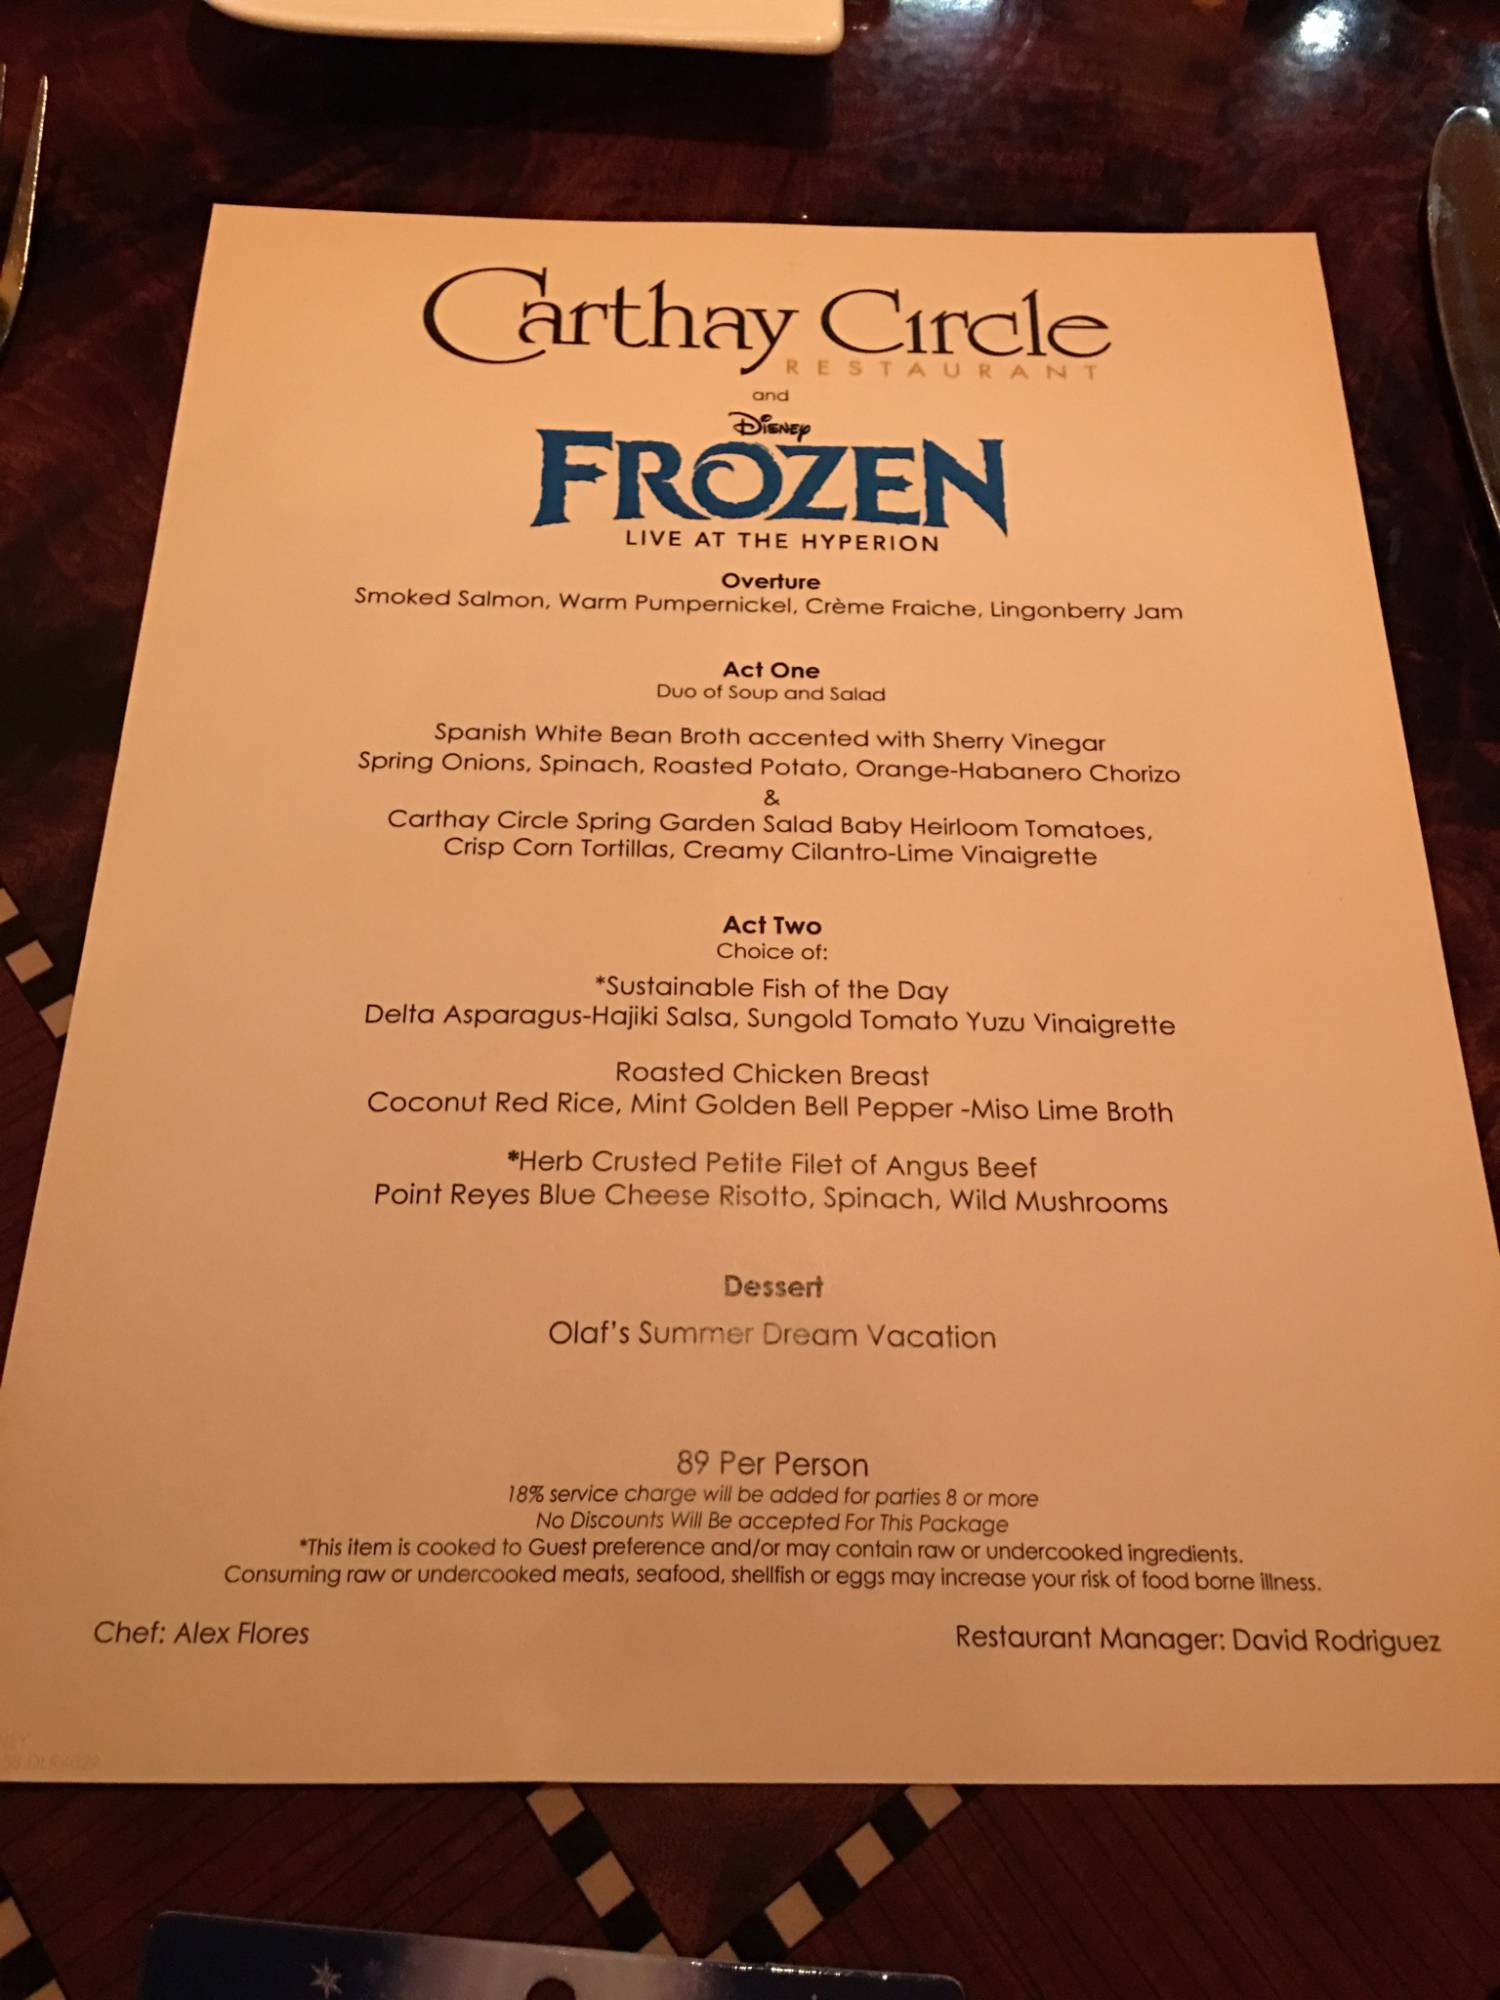 Enjoy lunch at Carthy Circle with the Frozen Dining Package |PassPorter.com